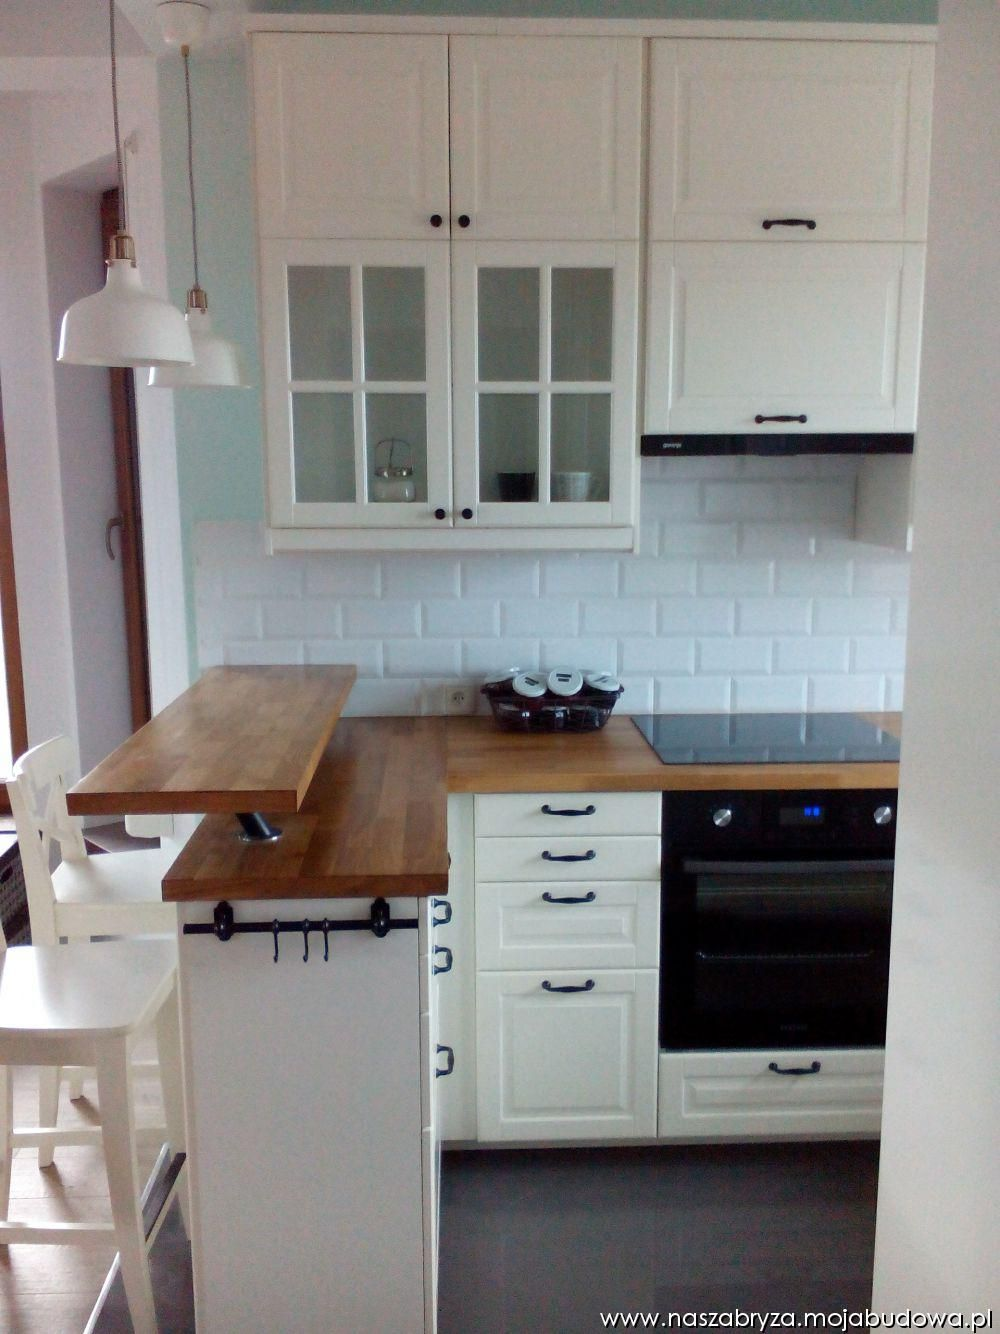 Ikea kitchens hittarp landhausstil kueche - Ikea Bodbyn Victoria This Is The Cabinet Style I Thought You Might Like At